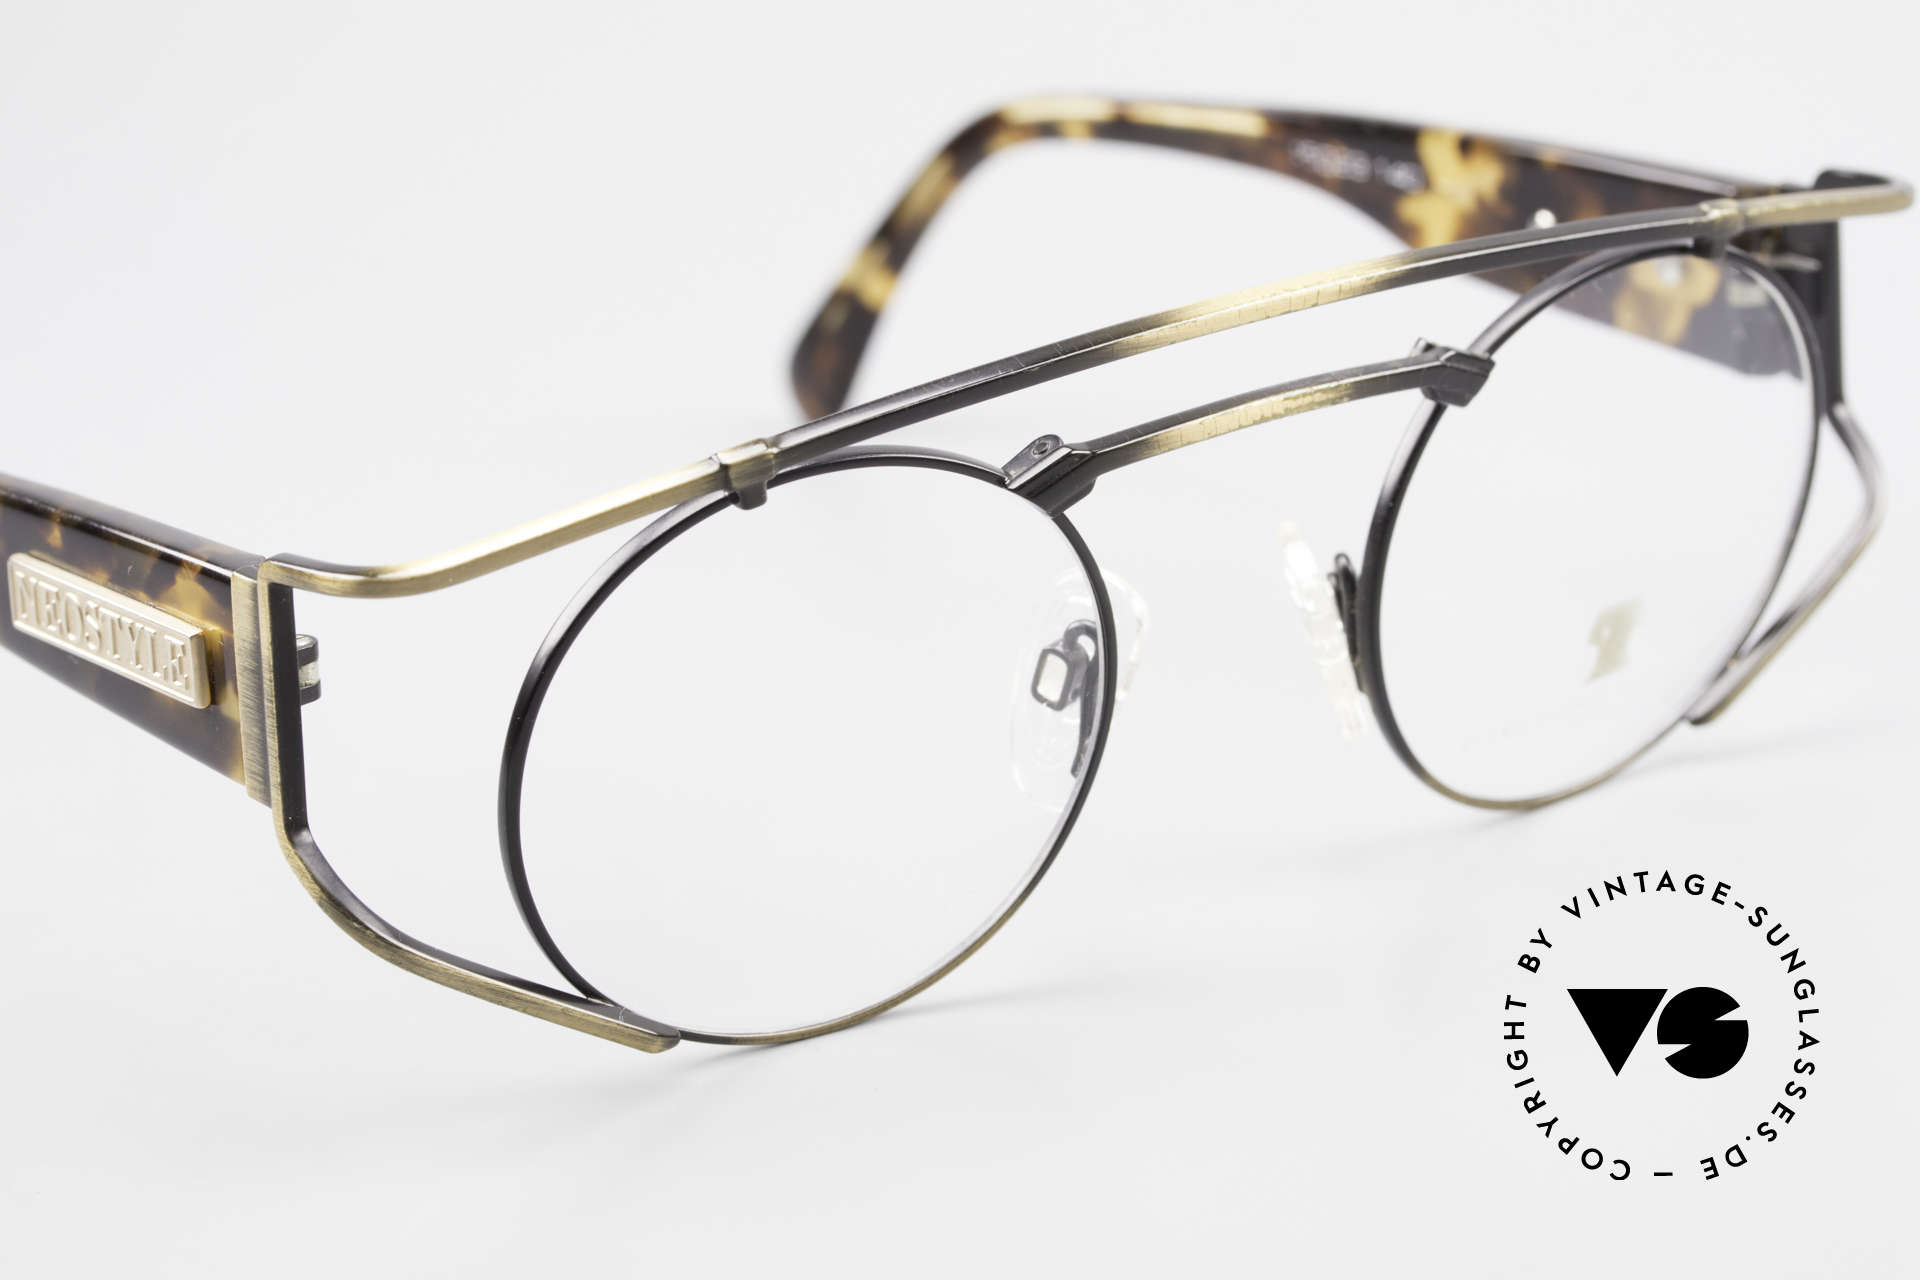 Neostyle Superstar 1 Steampunk Vintage Eyeglasses, unworn (like all our vintage STEAMPUNK glasses), Made for Men and Women